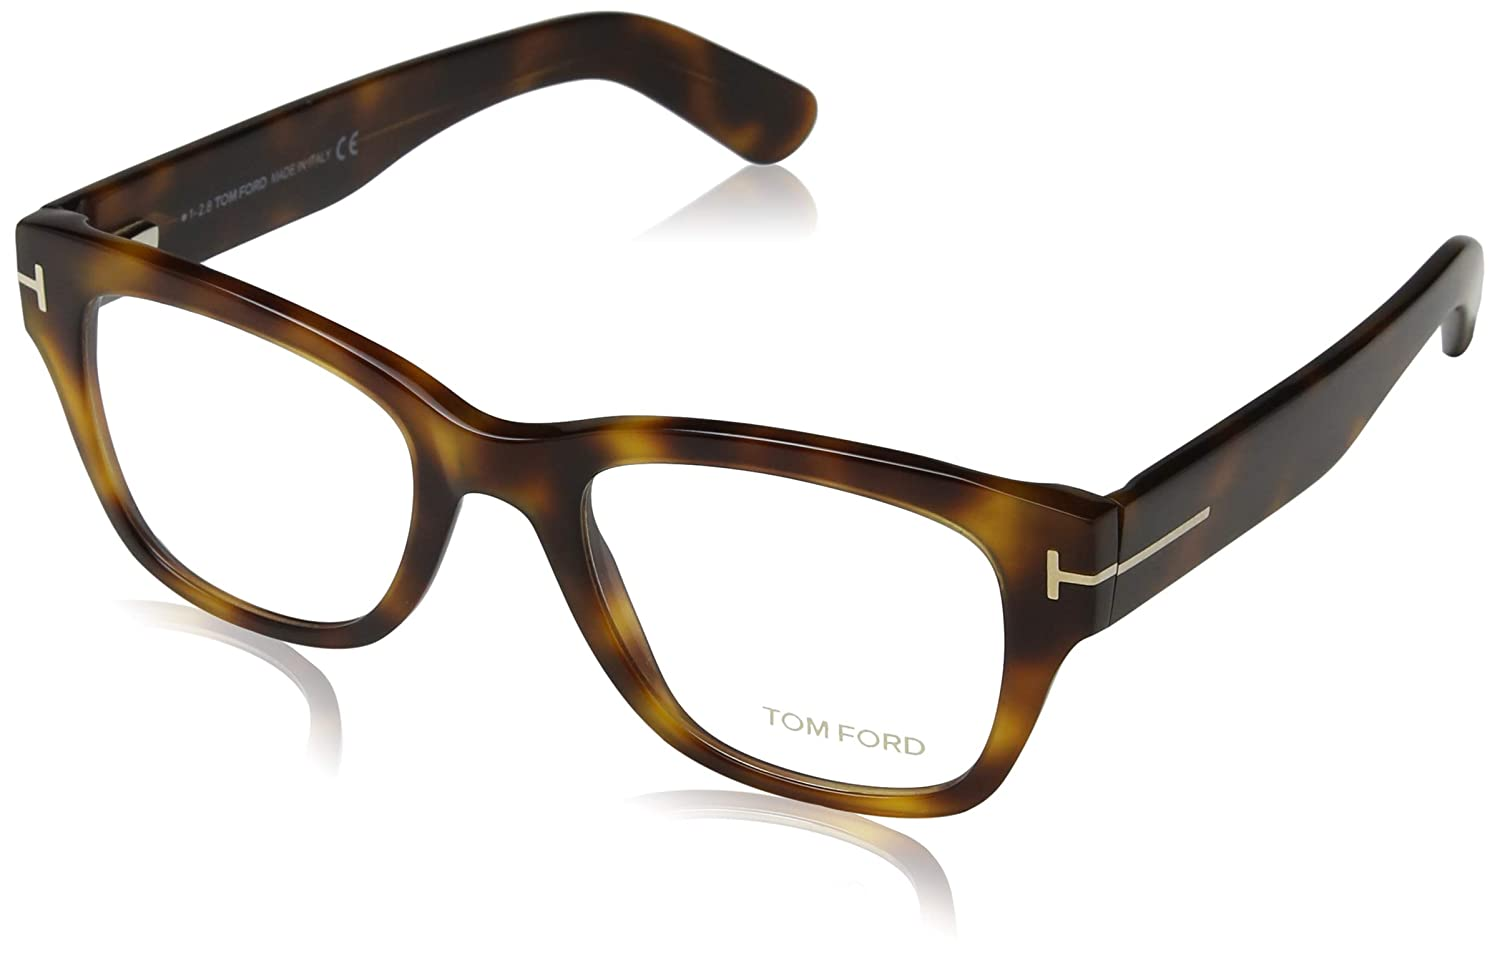 adb8d3b449 TOM FORD Eyeglasses FT5379 052 Dark Havana 51MM at Amazon Men s Clothing  store